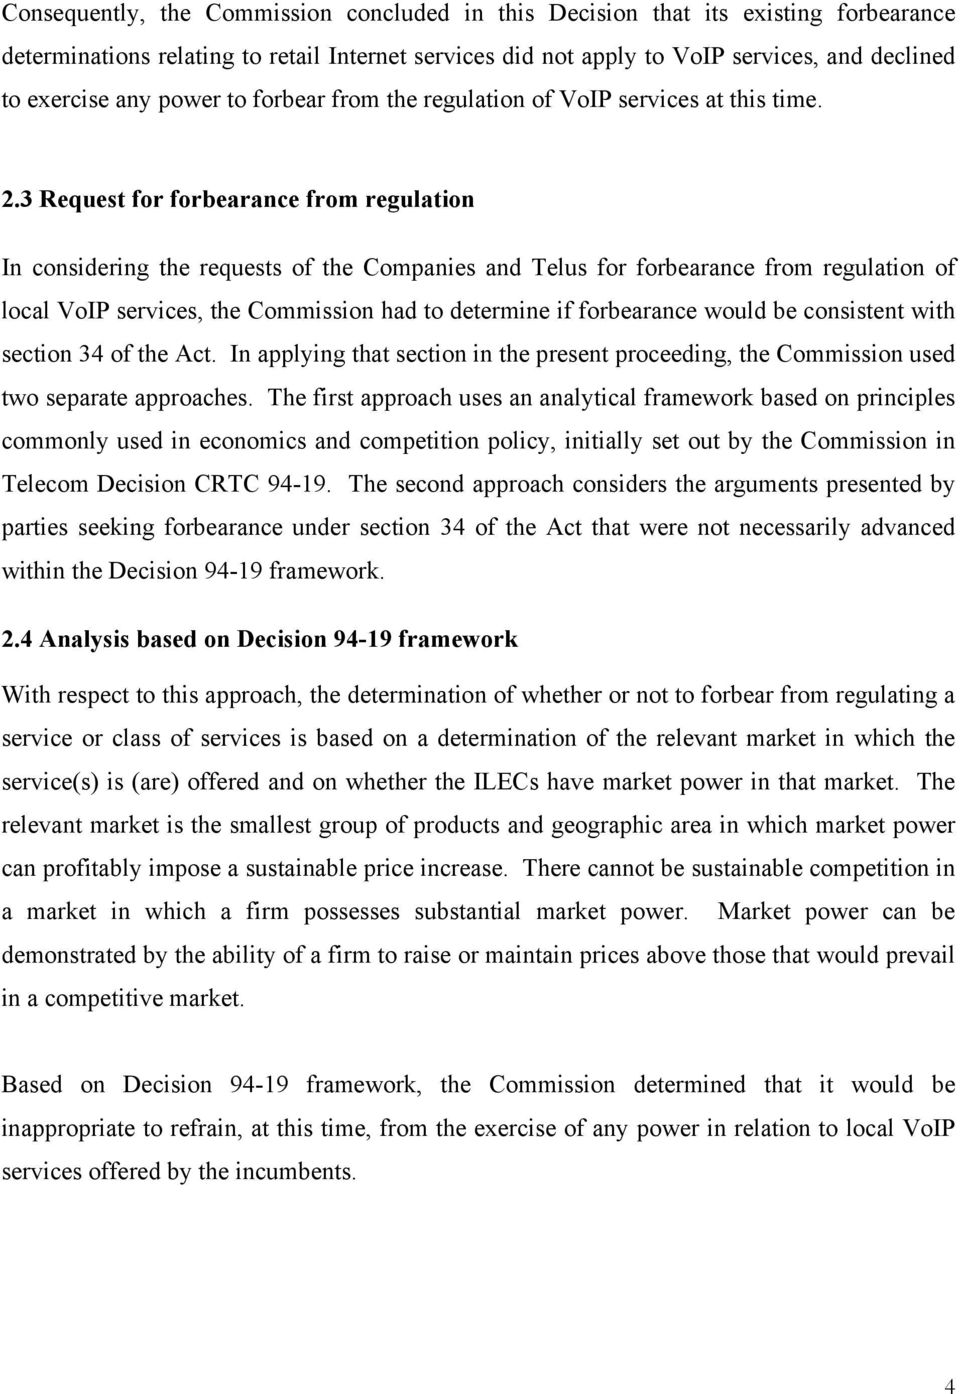 3 Request for forbearance from regulation In considering the requests of the Companies and Telus for forbearance from regulation of local VoIP services, the Commission had to determine if forbearance